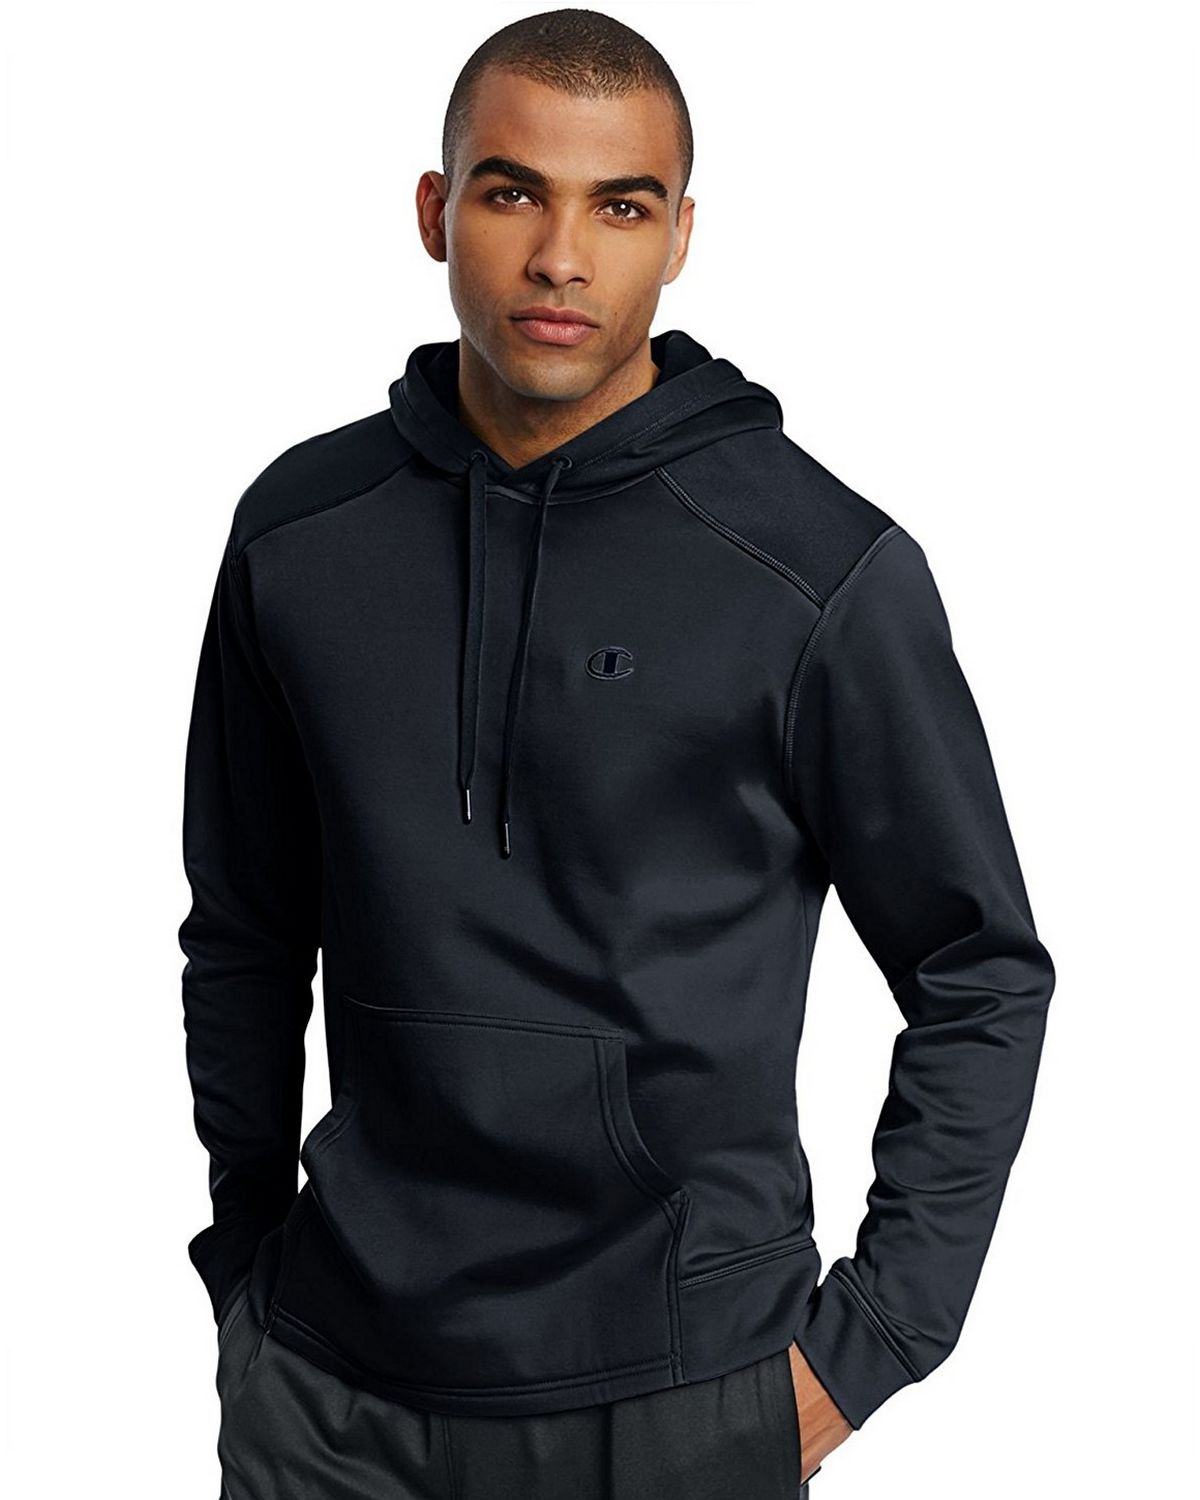 Champion S0875 Tech Fleece Pullover Hoodie - Navy - M S0875